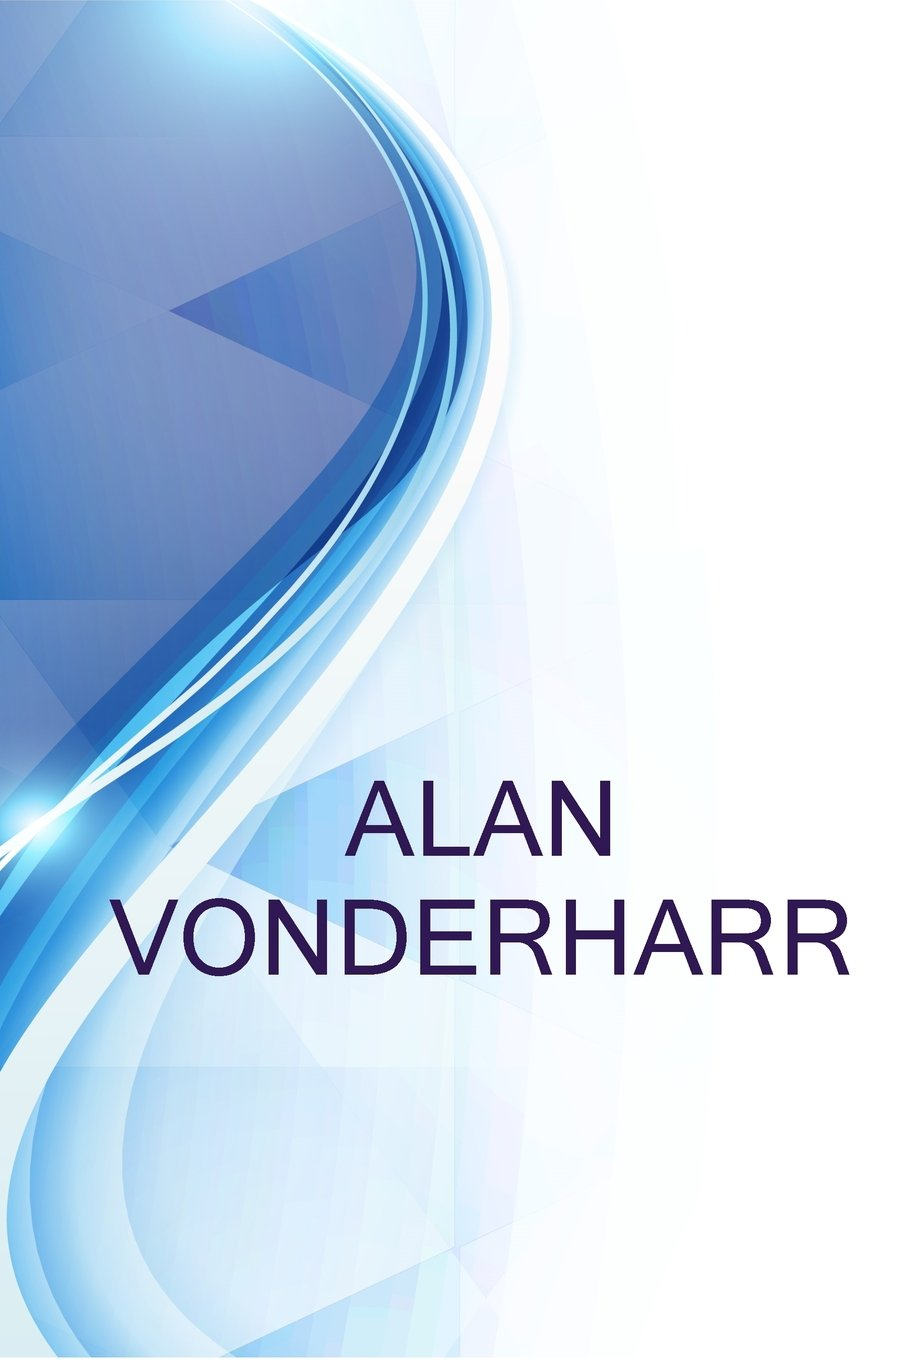 Alan Vonderharr Merchandise At Miskelly Furniture Ronald Russell